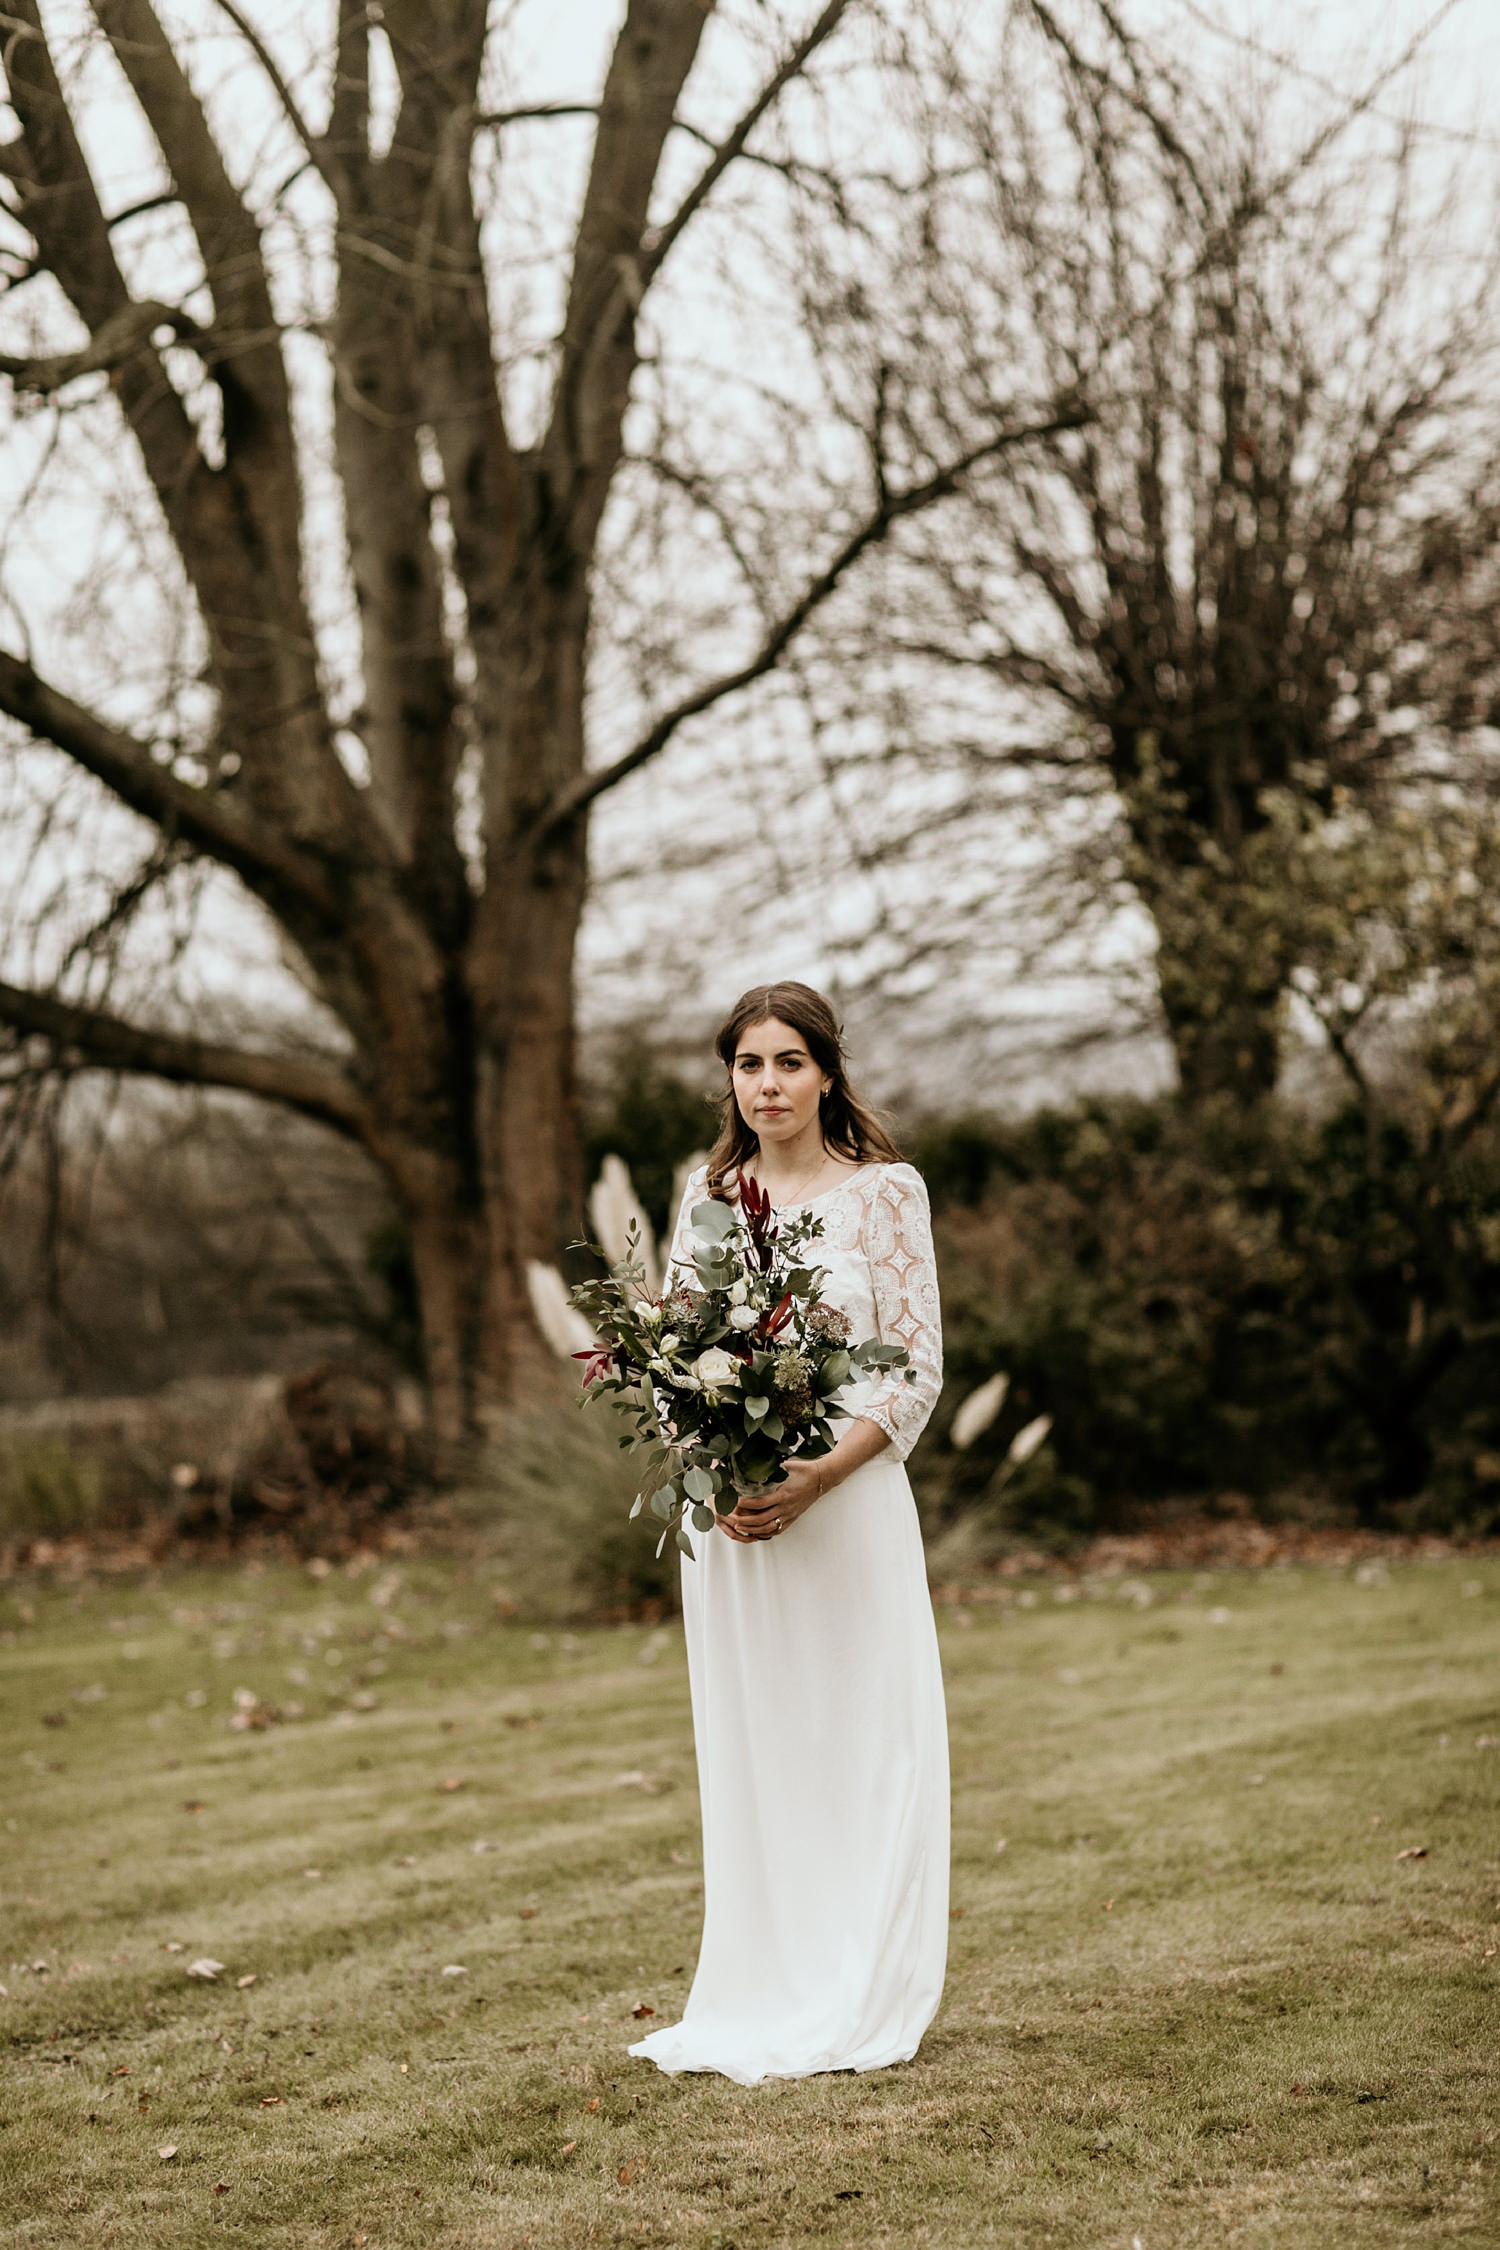 boho bridal portrait during a Winter wedding in Stroud by Cotswolds wedding photographers